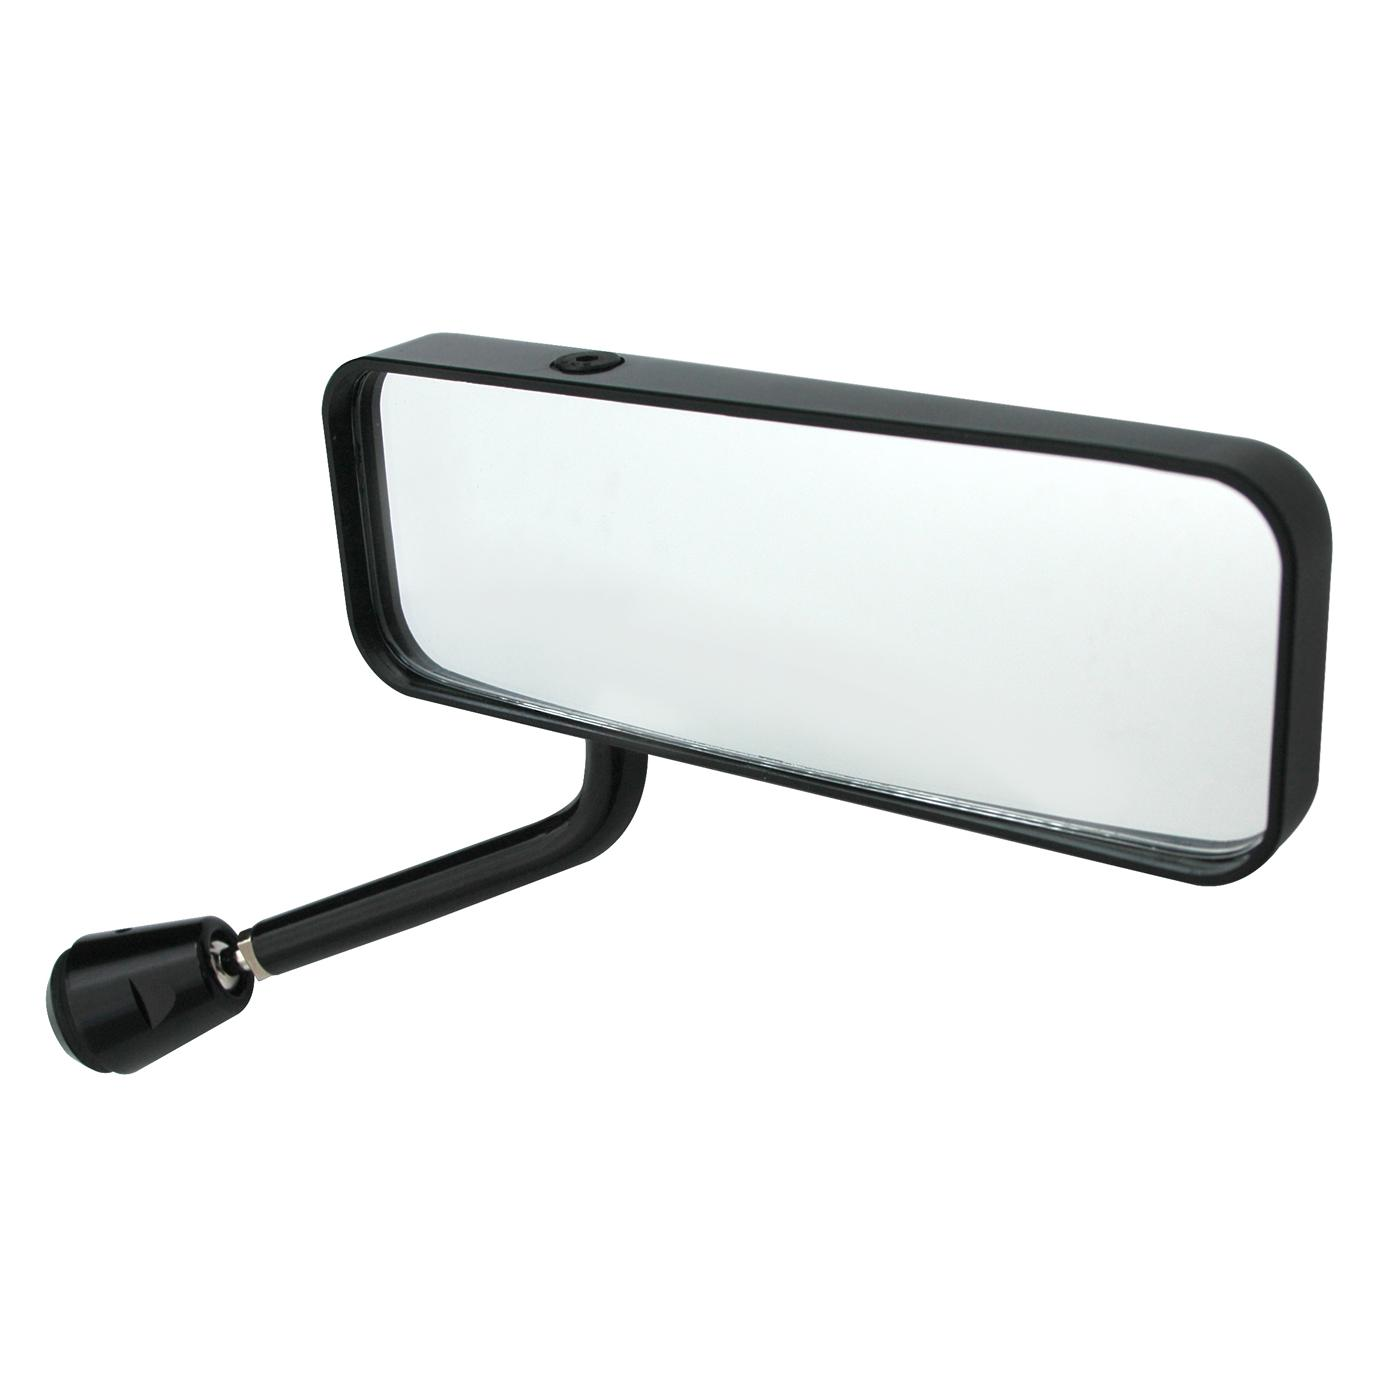 Lifeline fia formula car mirror black right hand from for Mirror formula